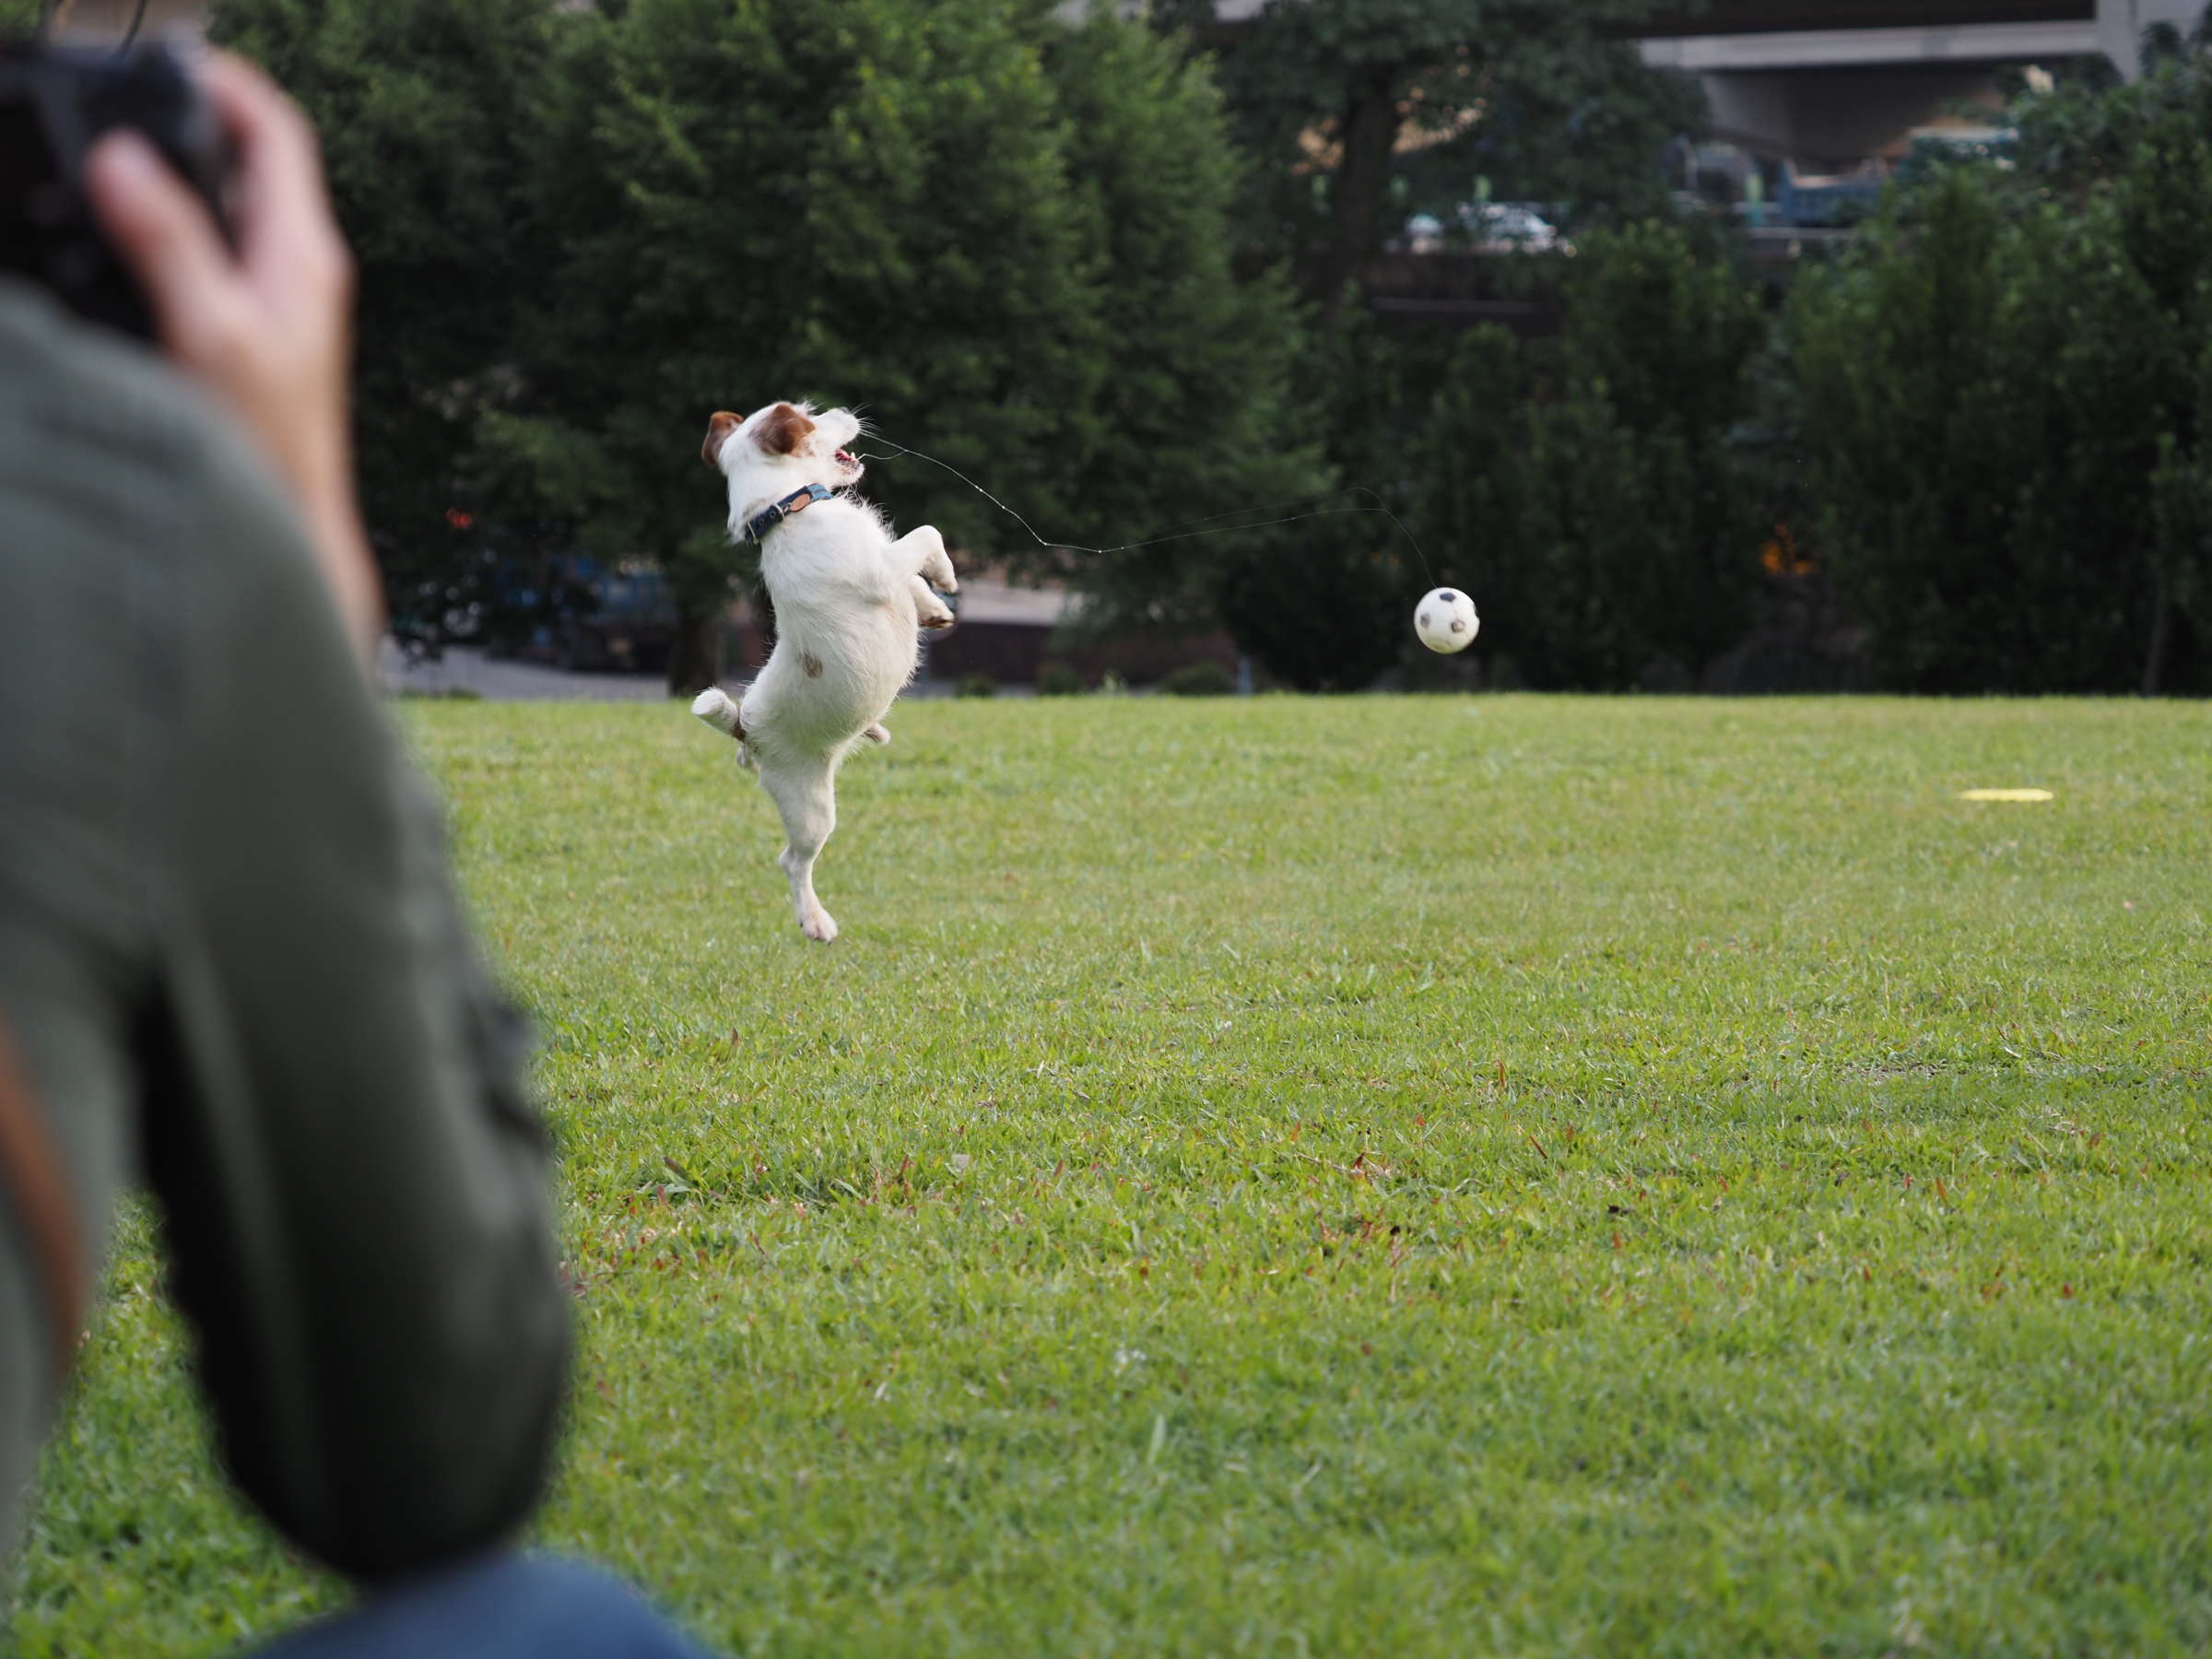 Dog, Obedience trial, Obedience training, Lawn, Tree, Training, grass, green, grass, lawn, plant, mammal, vertebrate, dog like mammal, dog, obedience trial, tree